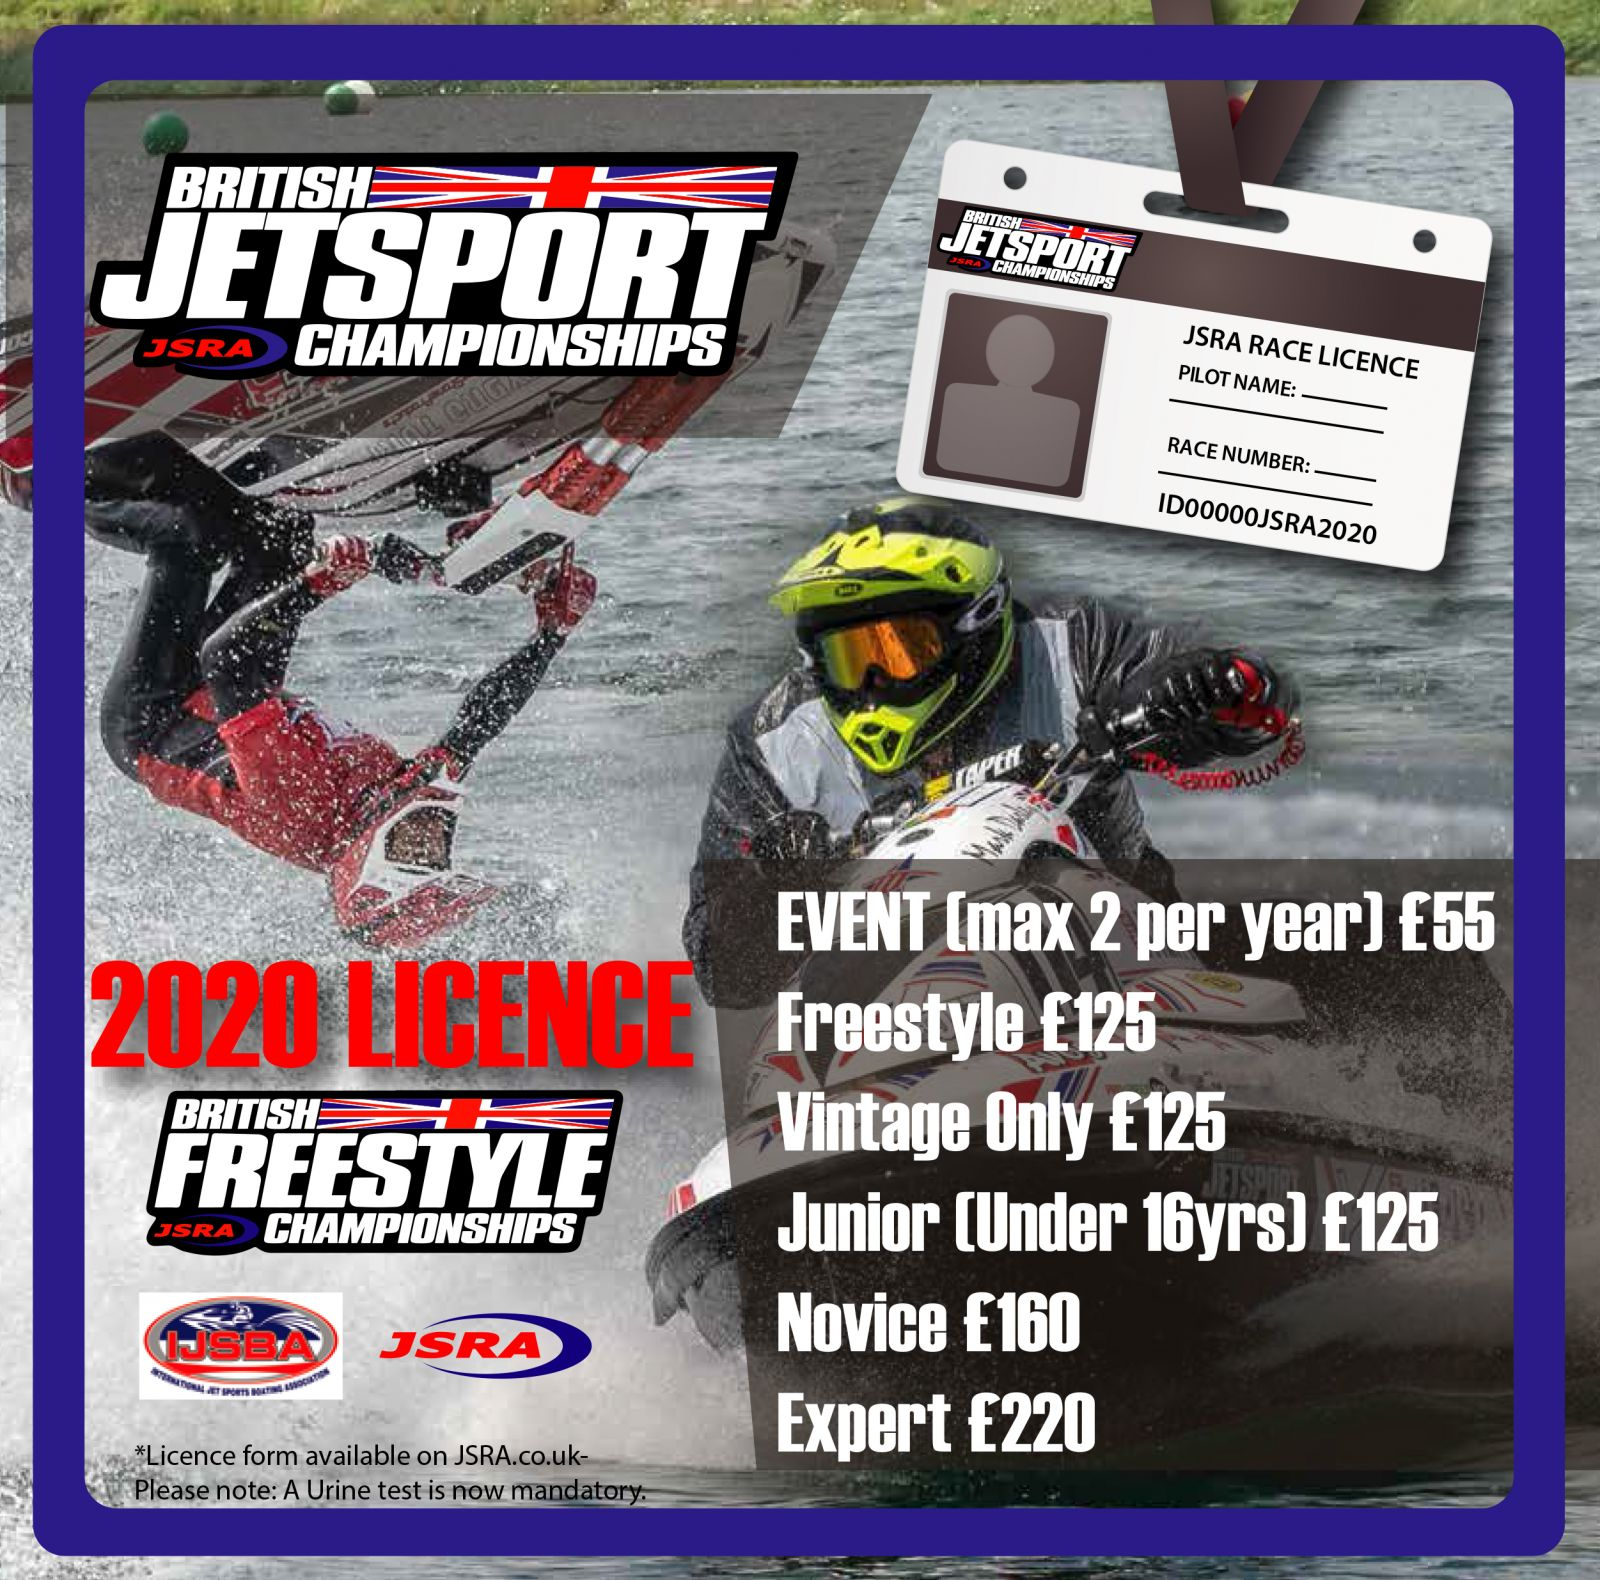 2020 British Jetsport Championships Race/Freestyle Licence Fees